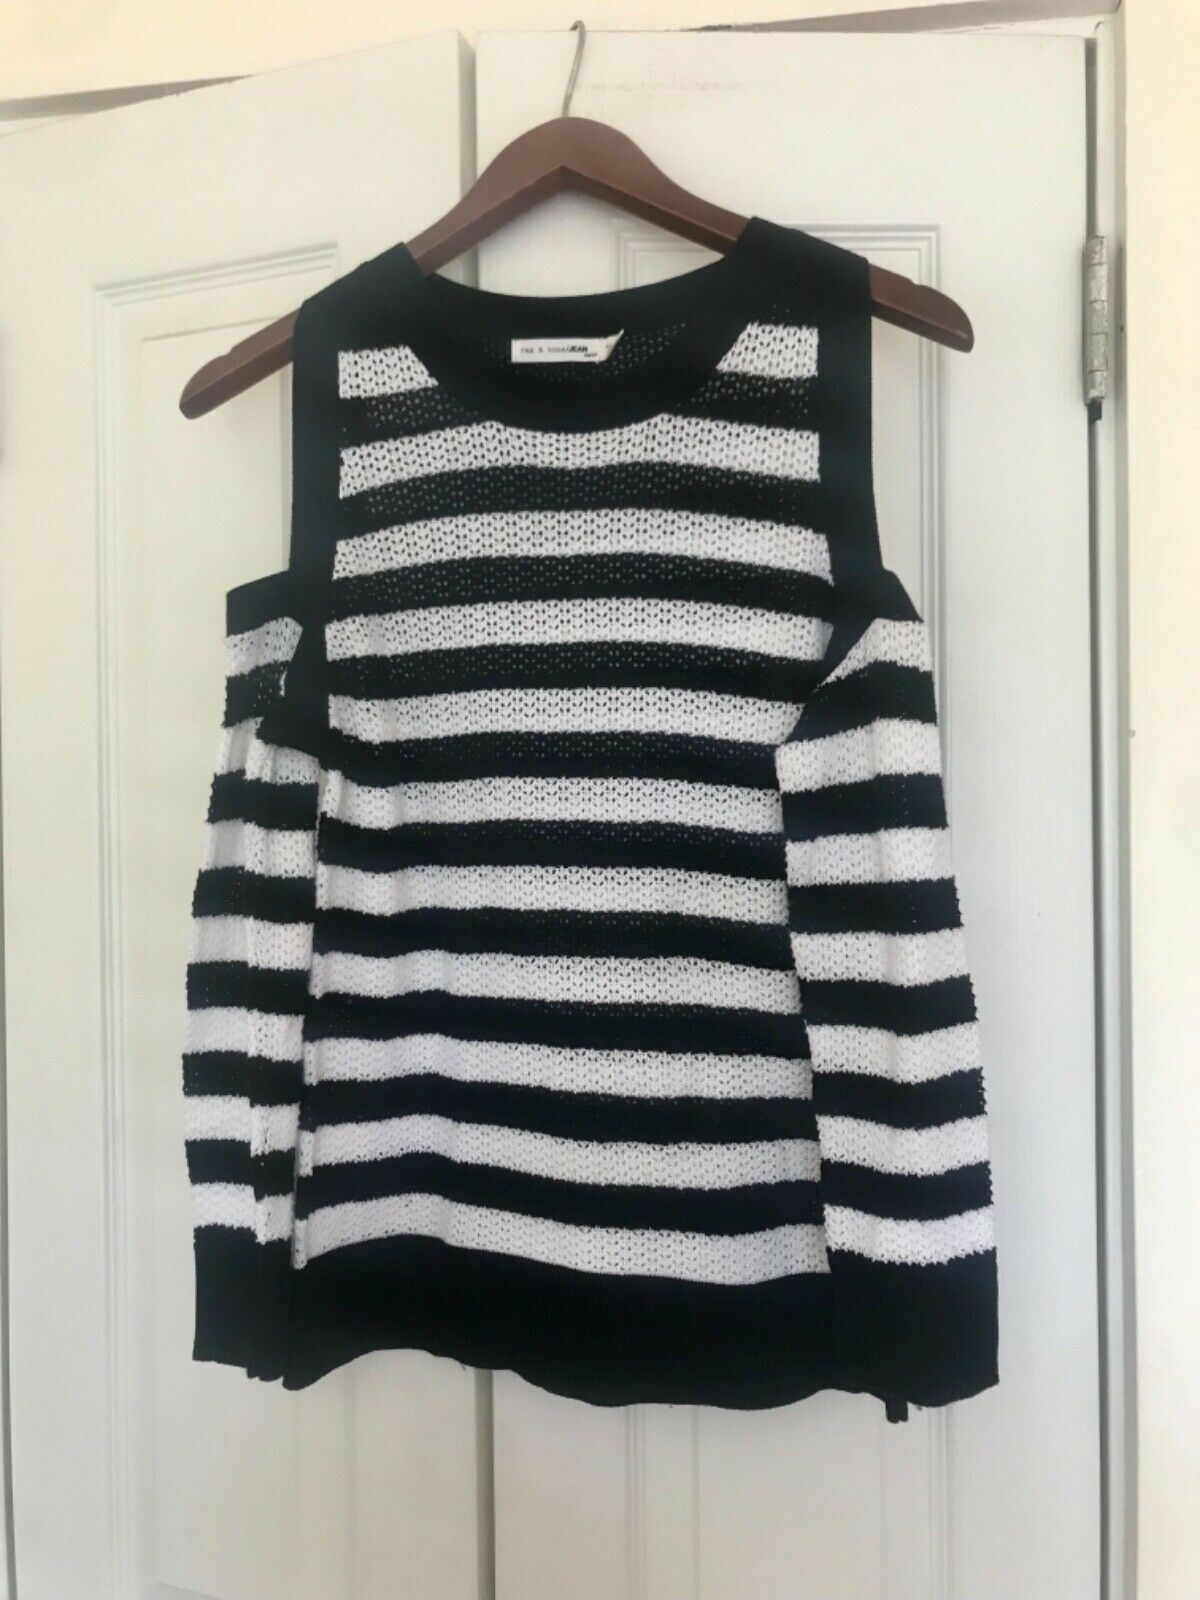 Rag and bone damen top Größe small